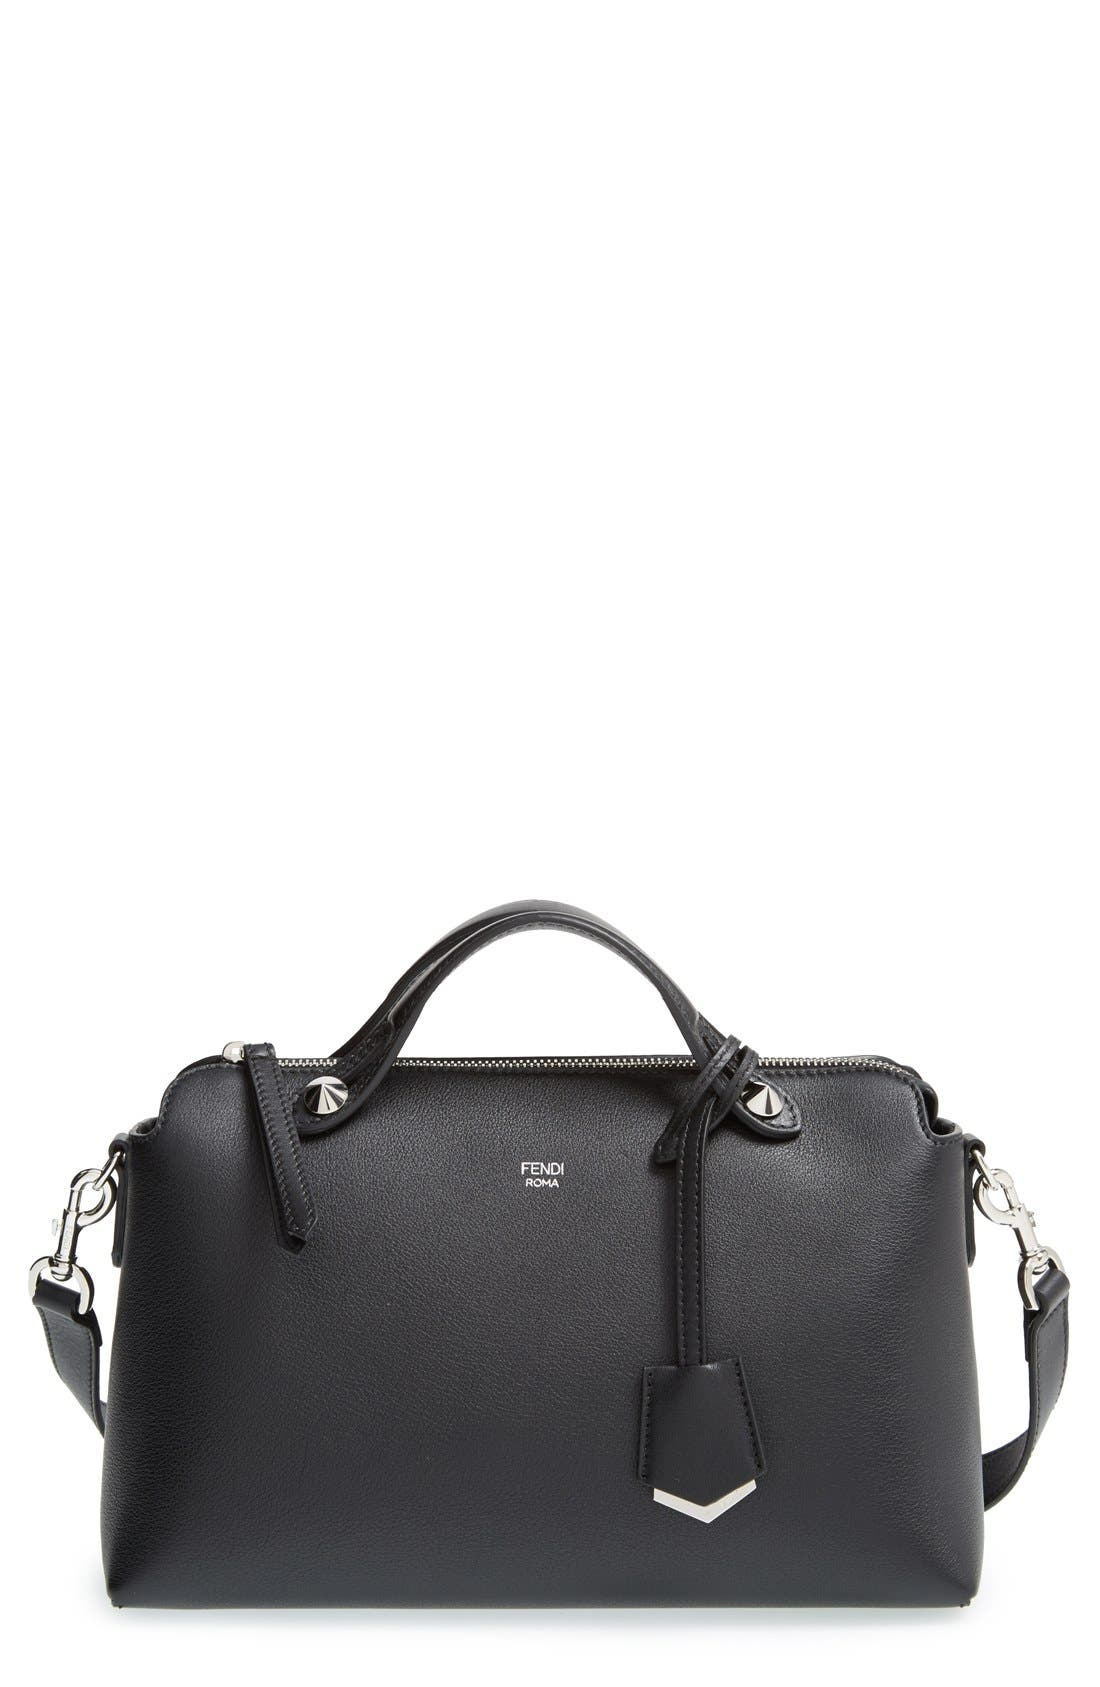 FENDI 'Medium By the Way' Convertible Leather Shoulder